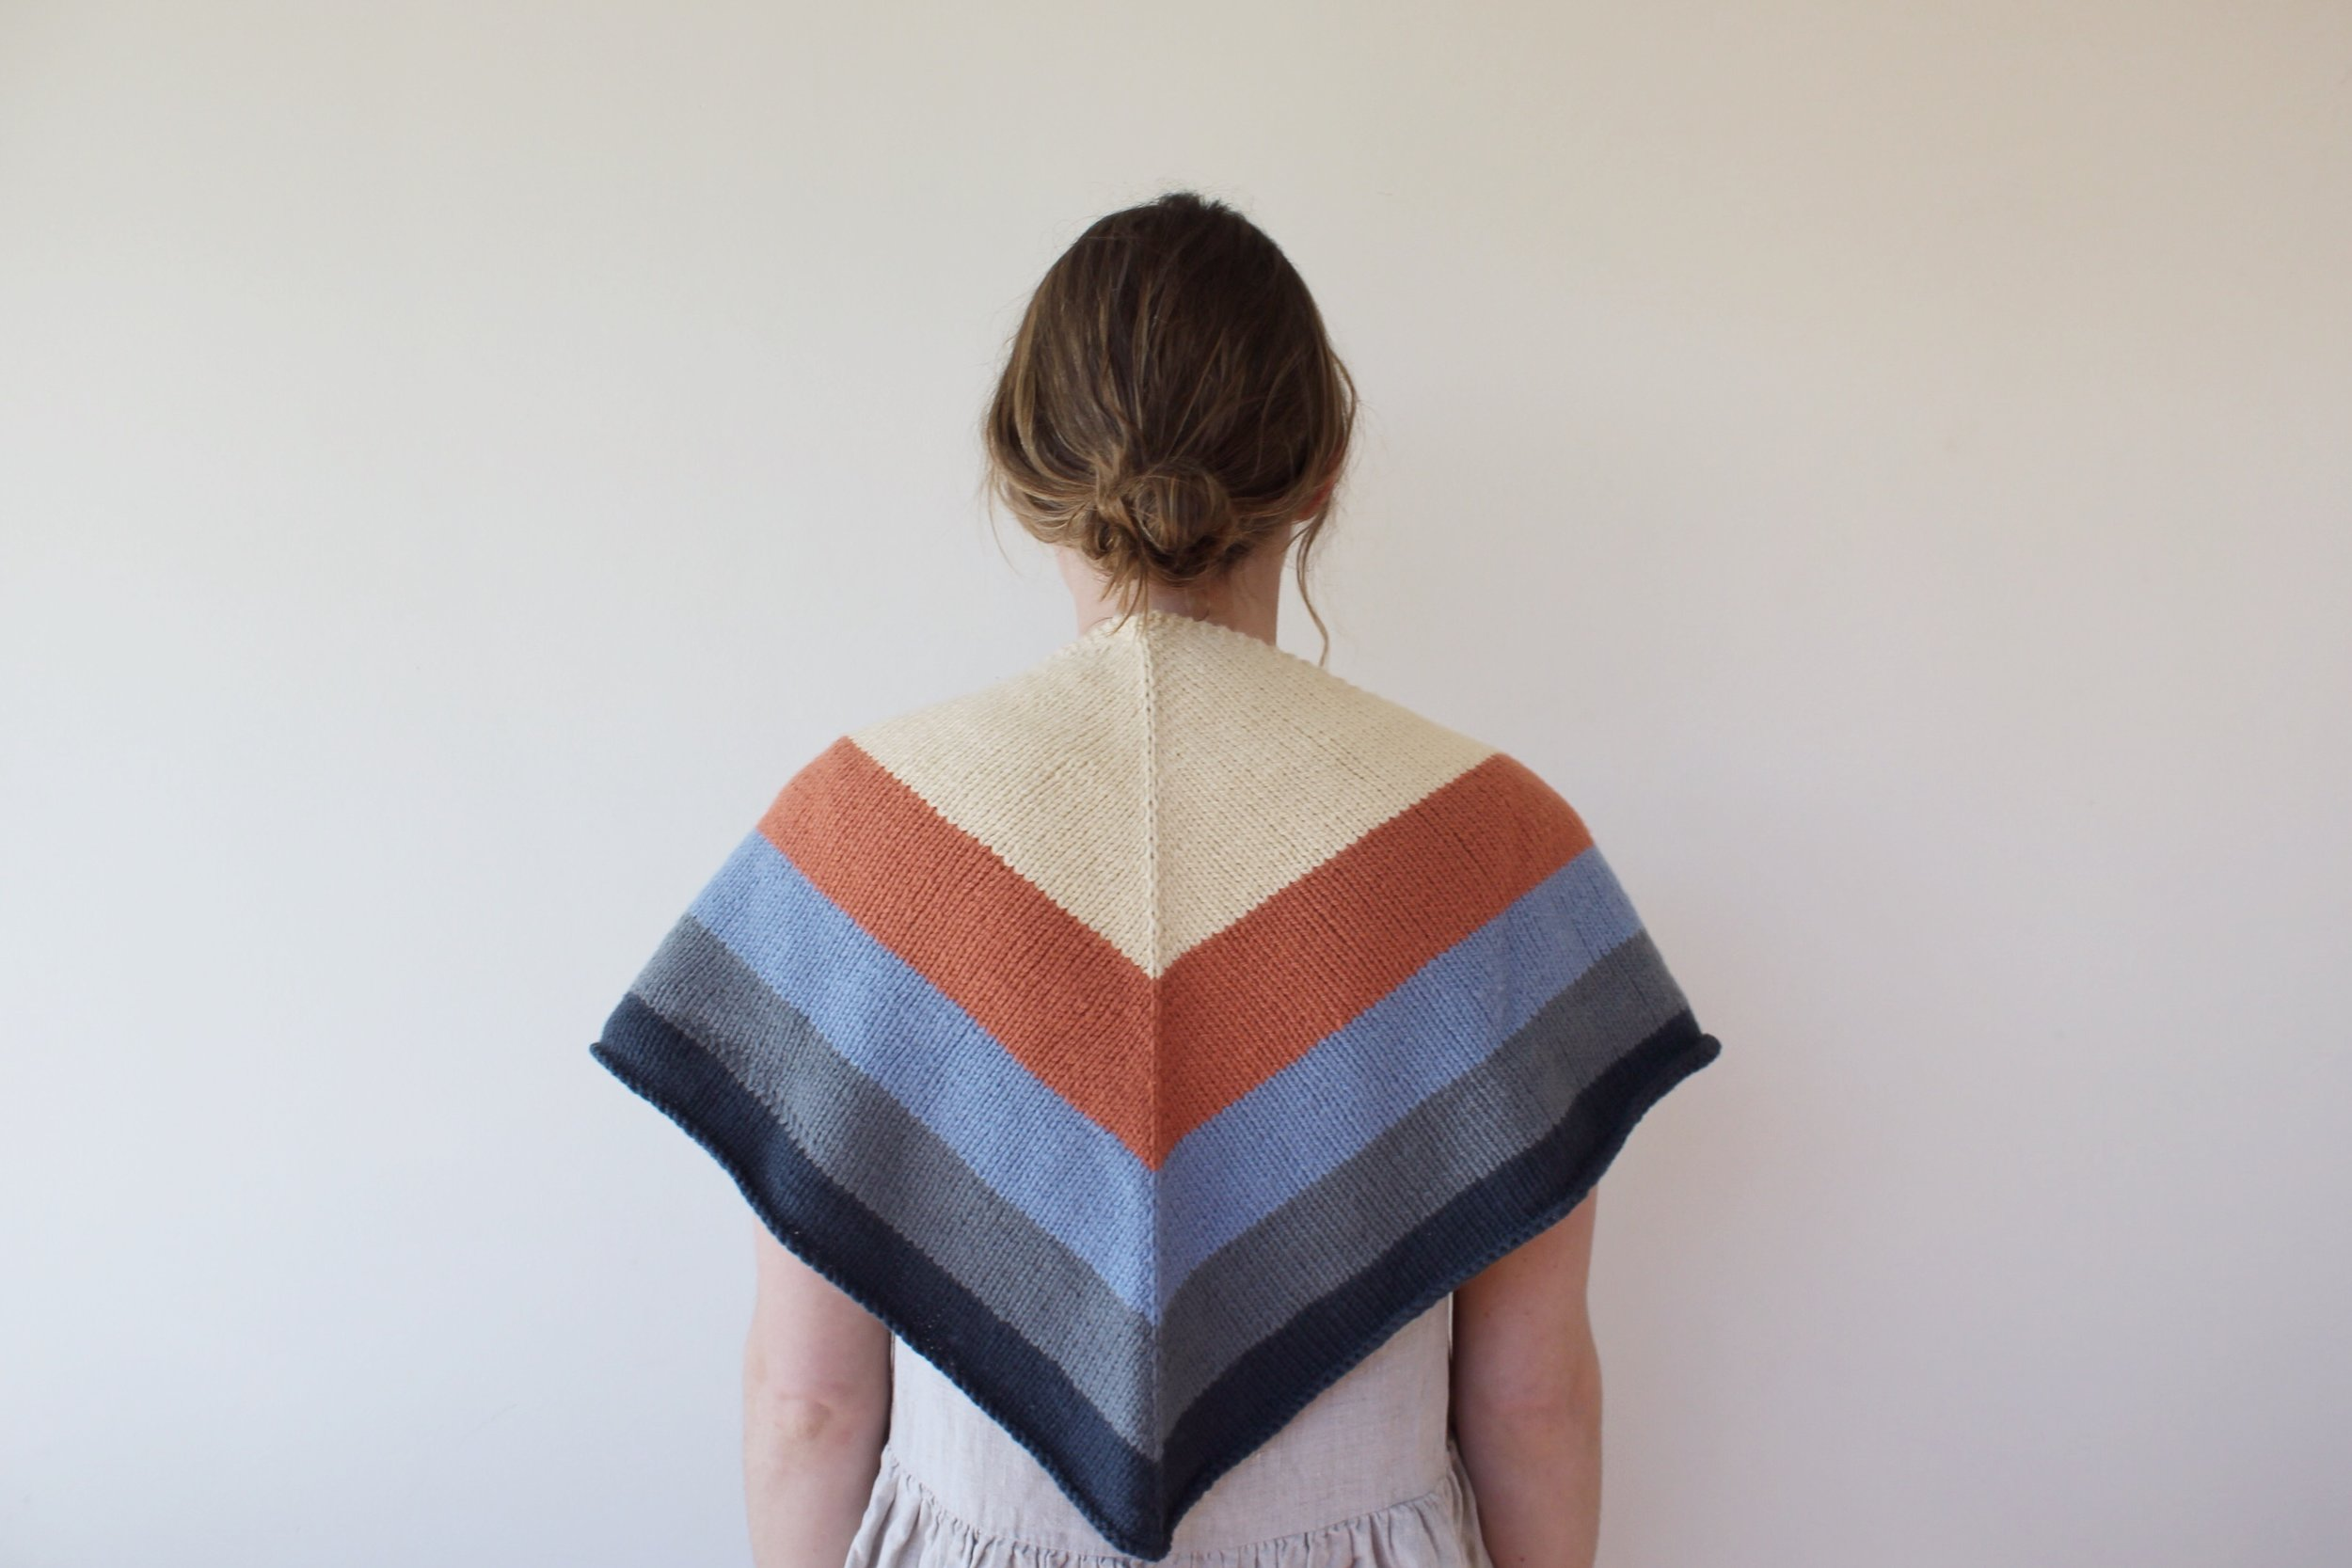 a shawl pattern i wrote for a class i taught with Lily and Dot in Dec '17